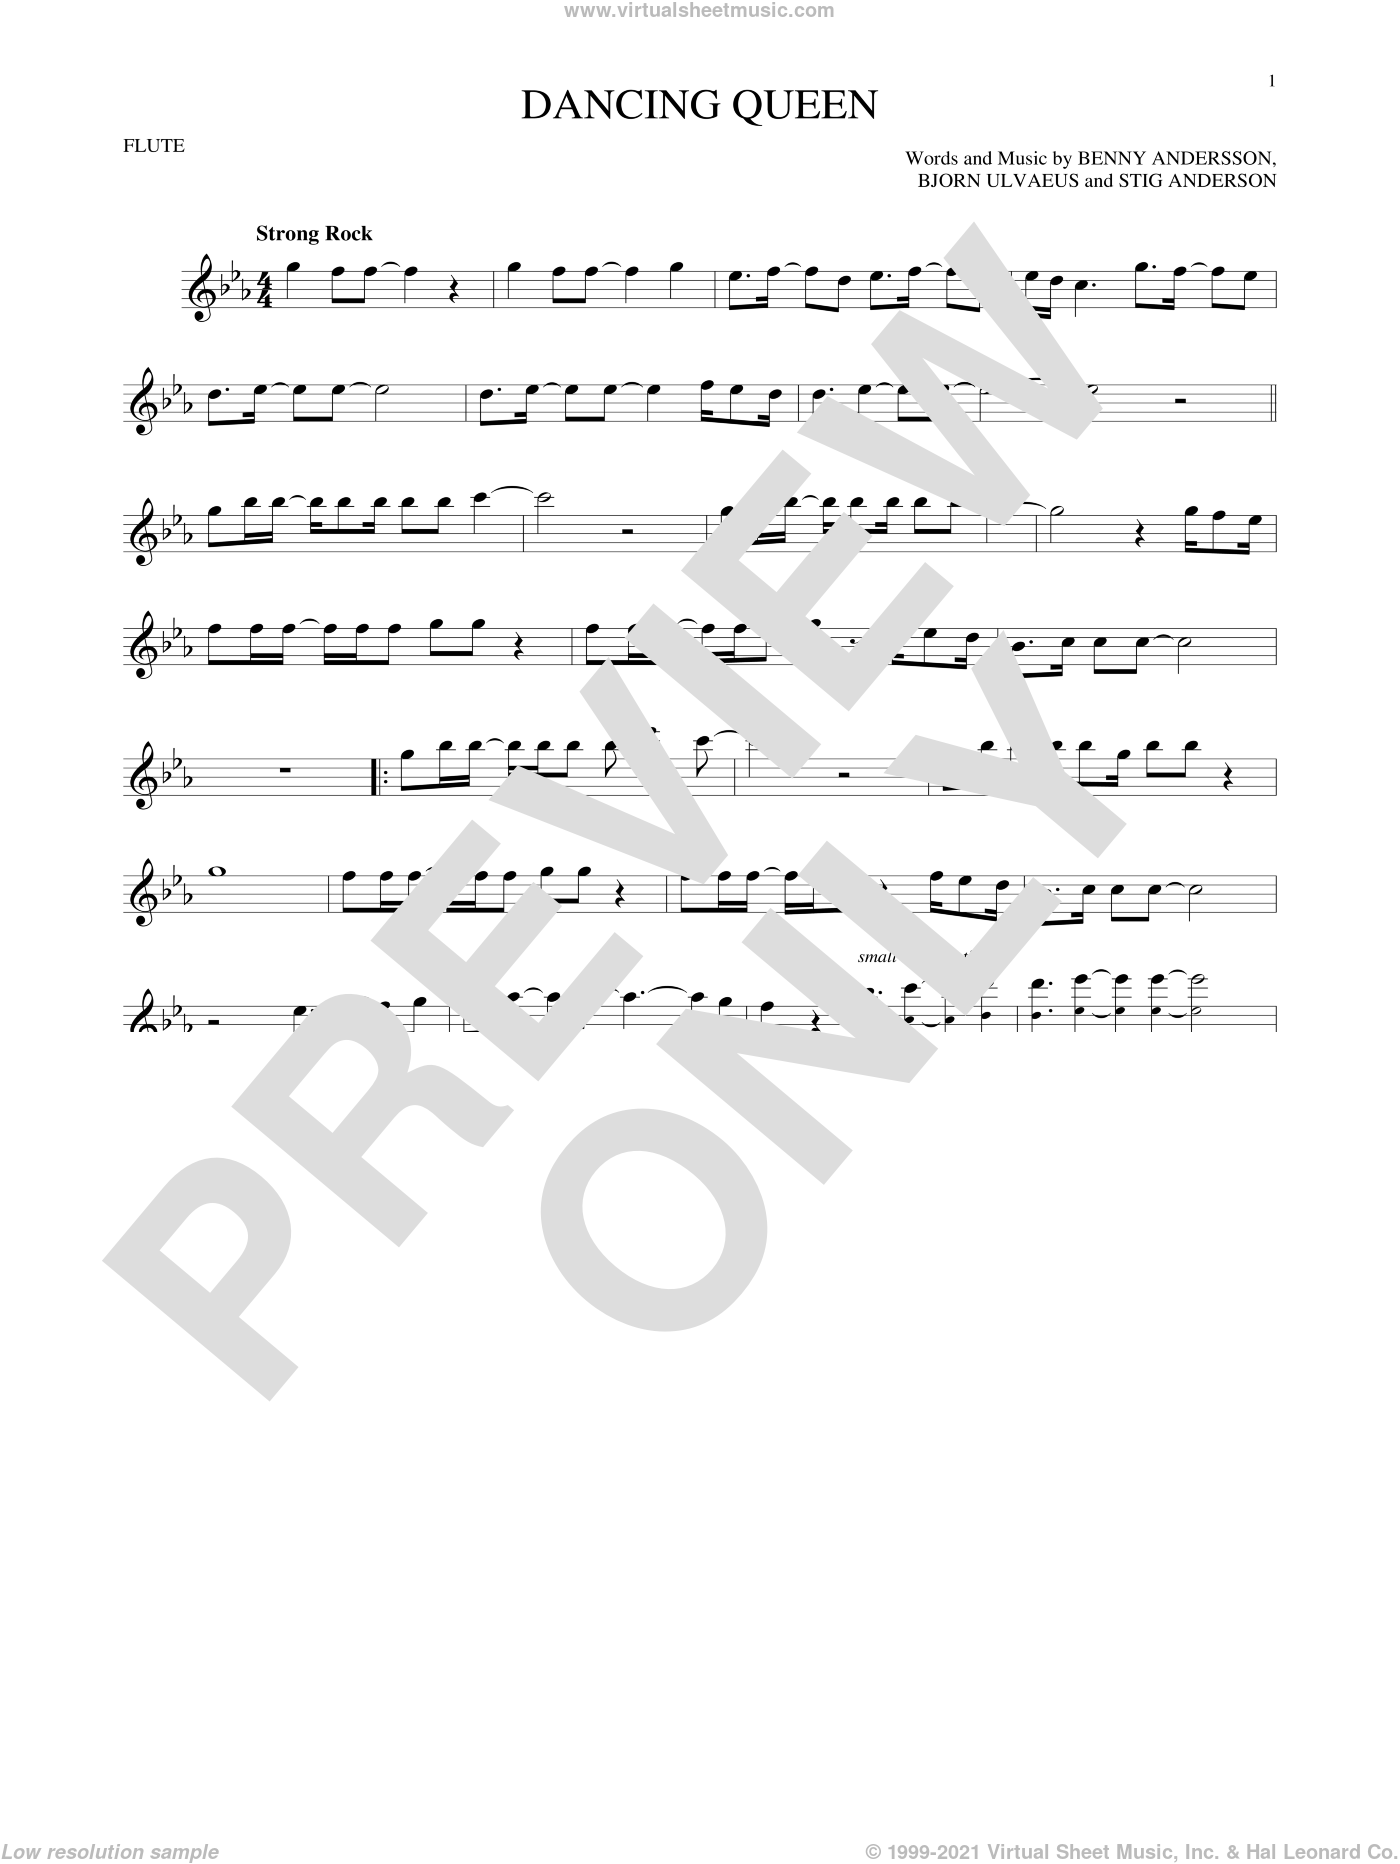 Dancing Queen sheet music for flute solo by ABBA, Benny Andersson, Bjorn Ulvaeus and Stig Anderson, intermediate skill level